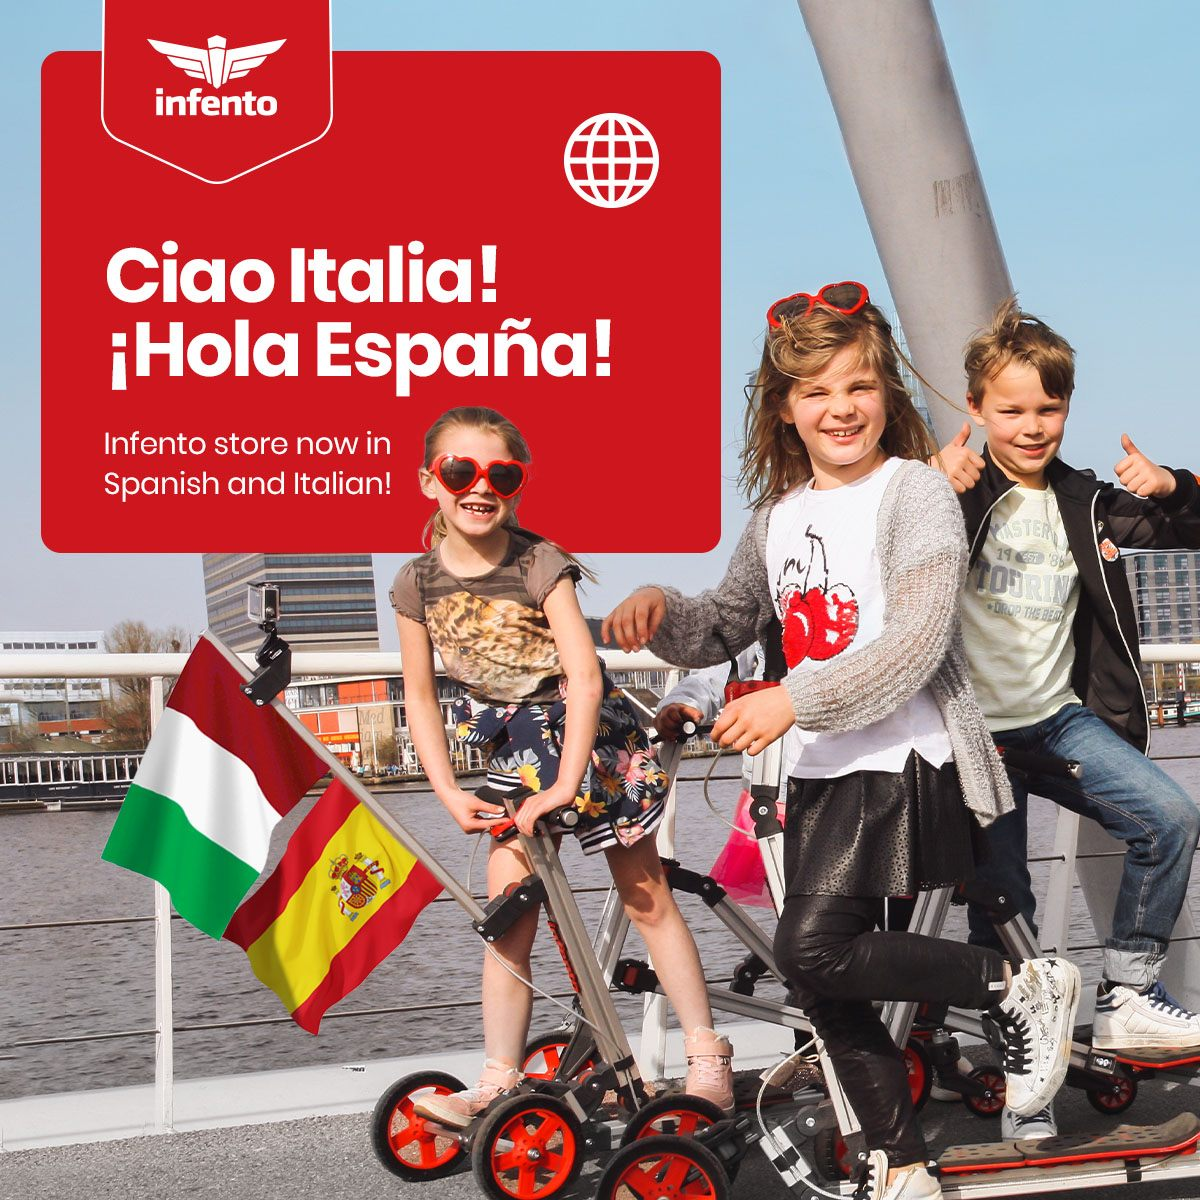 Infento in Spanish and Italian photo